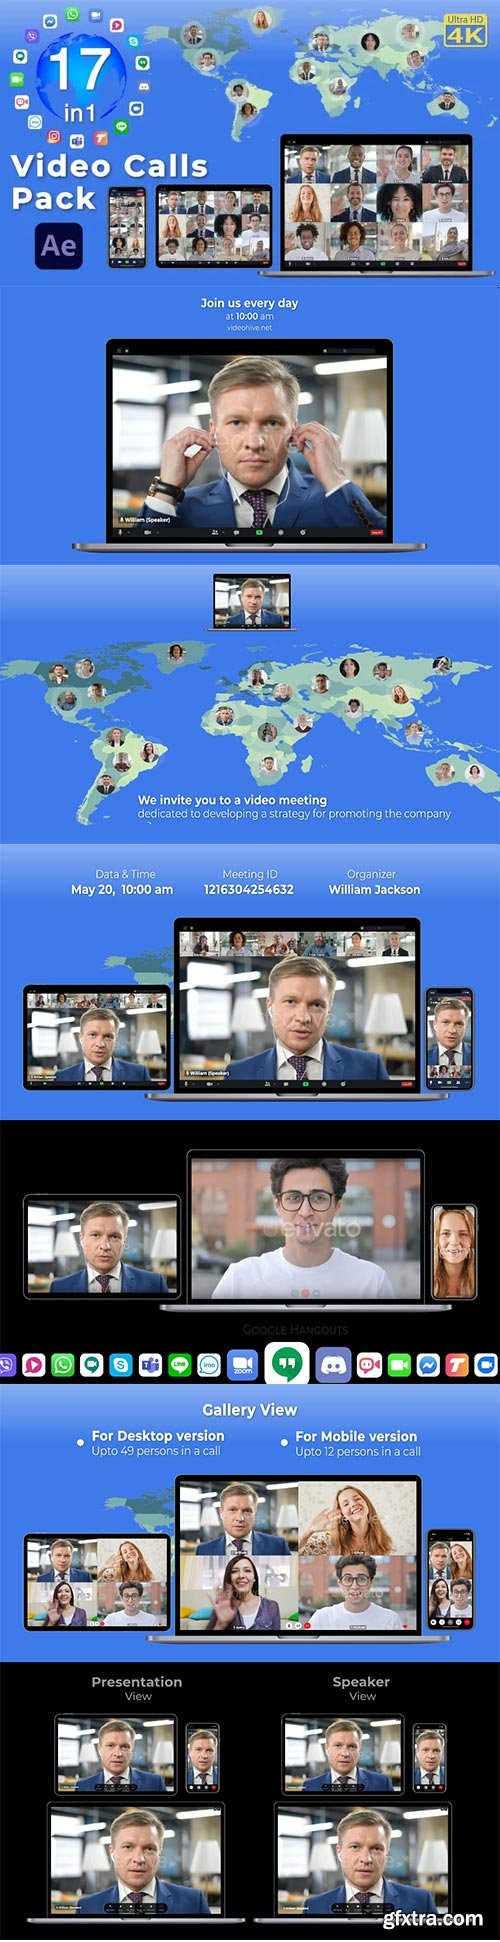 Videohive - Video Calls Pack 17 in 1 - 29709461